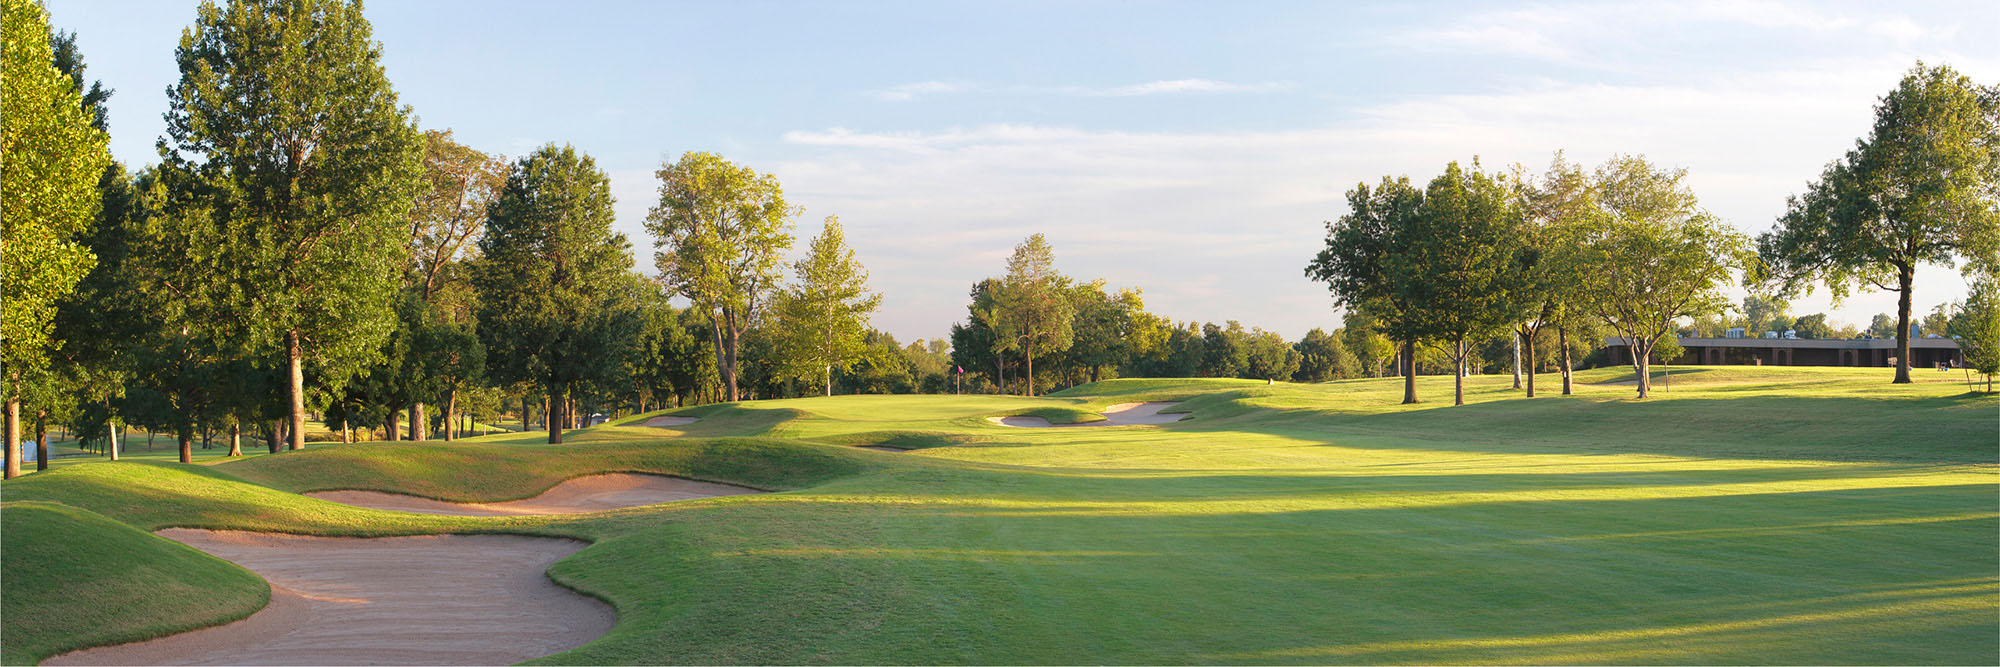 Golf Course Image - Tulsa Country Club No. 18